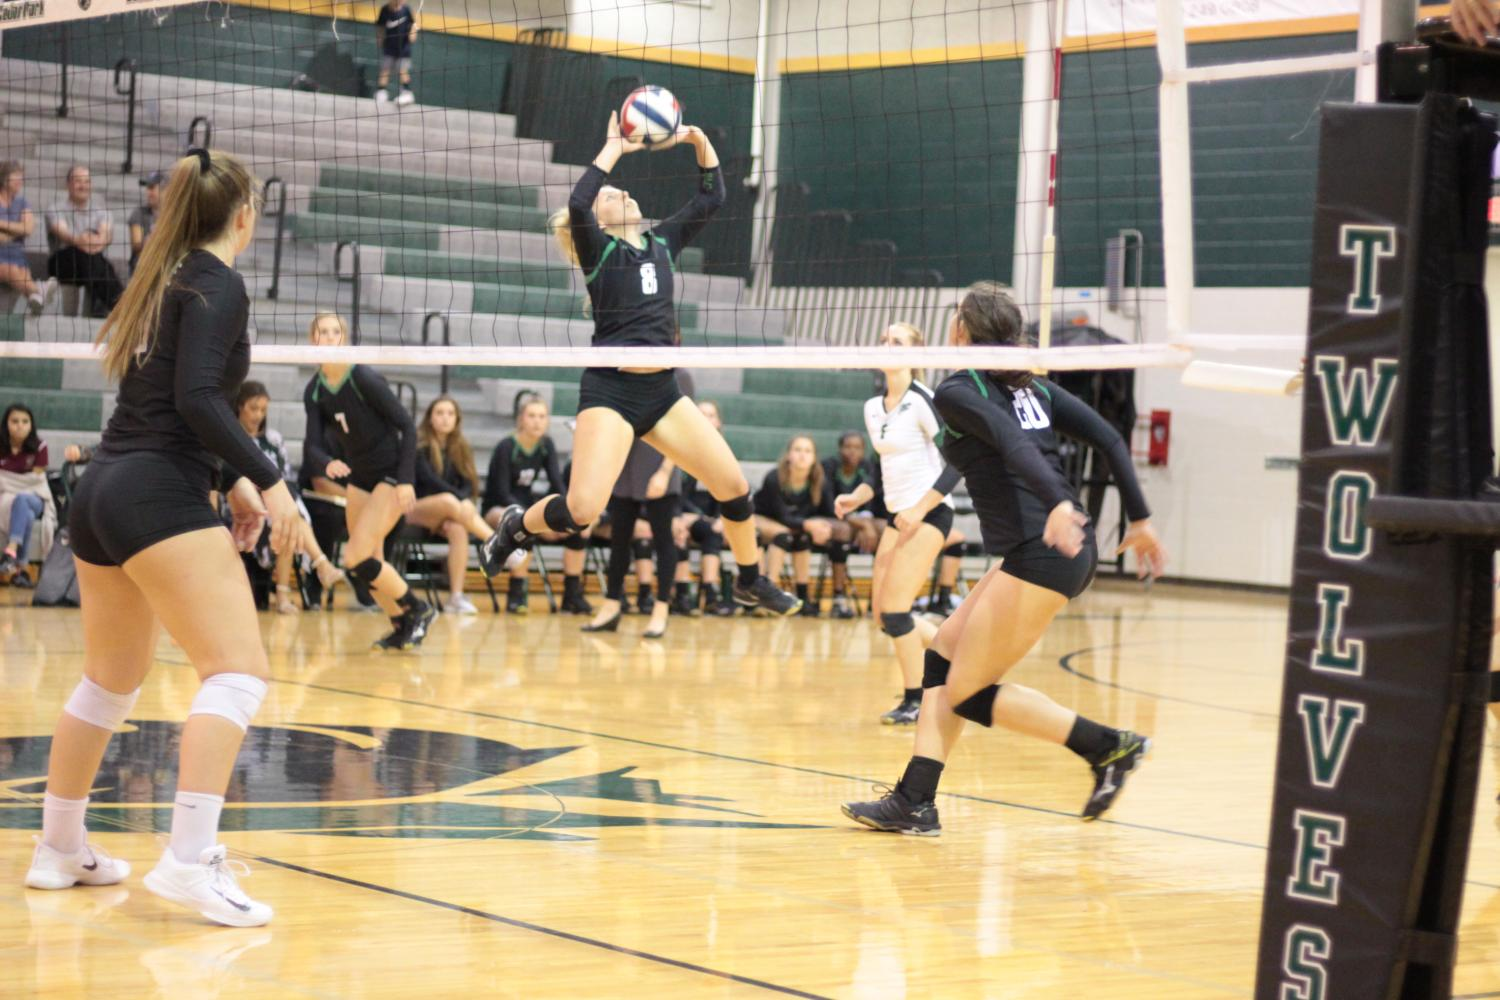 Junior Laurel Foster sets the ball to a teammate in the second sets against Rouse on Sept. 22.